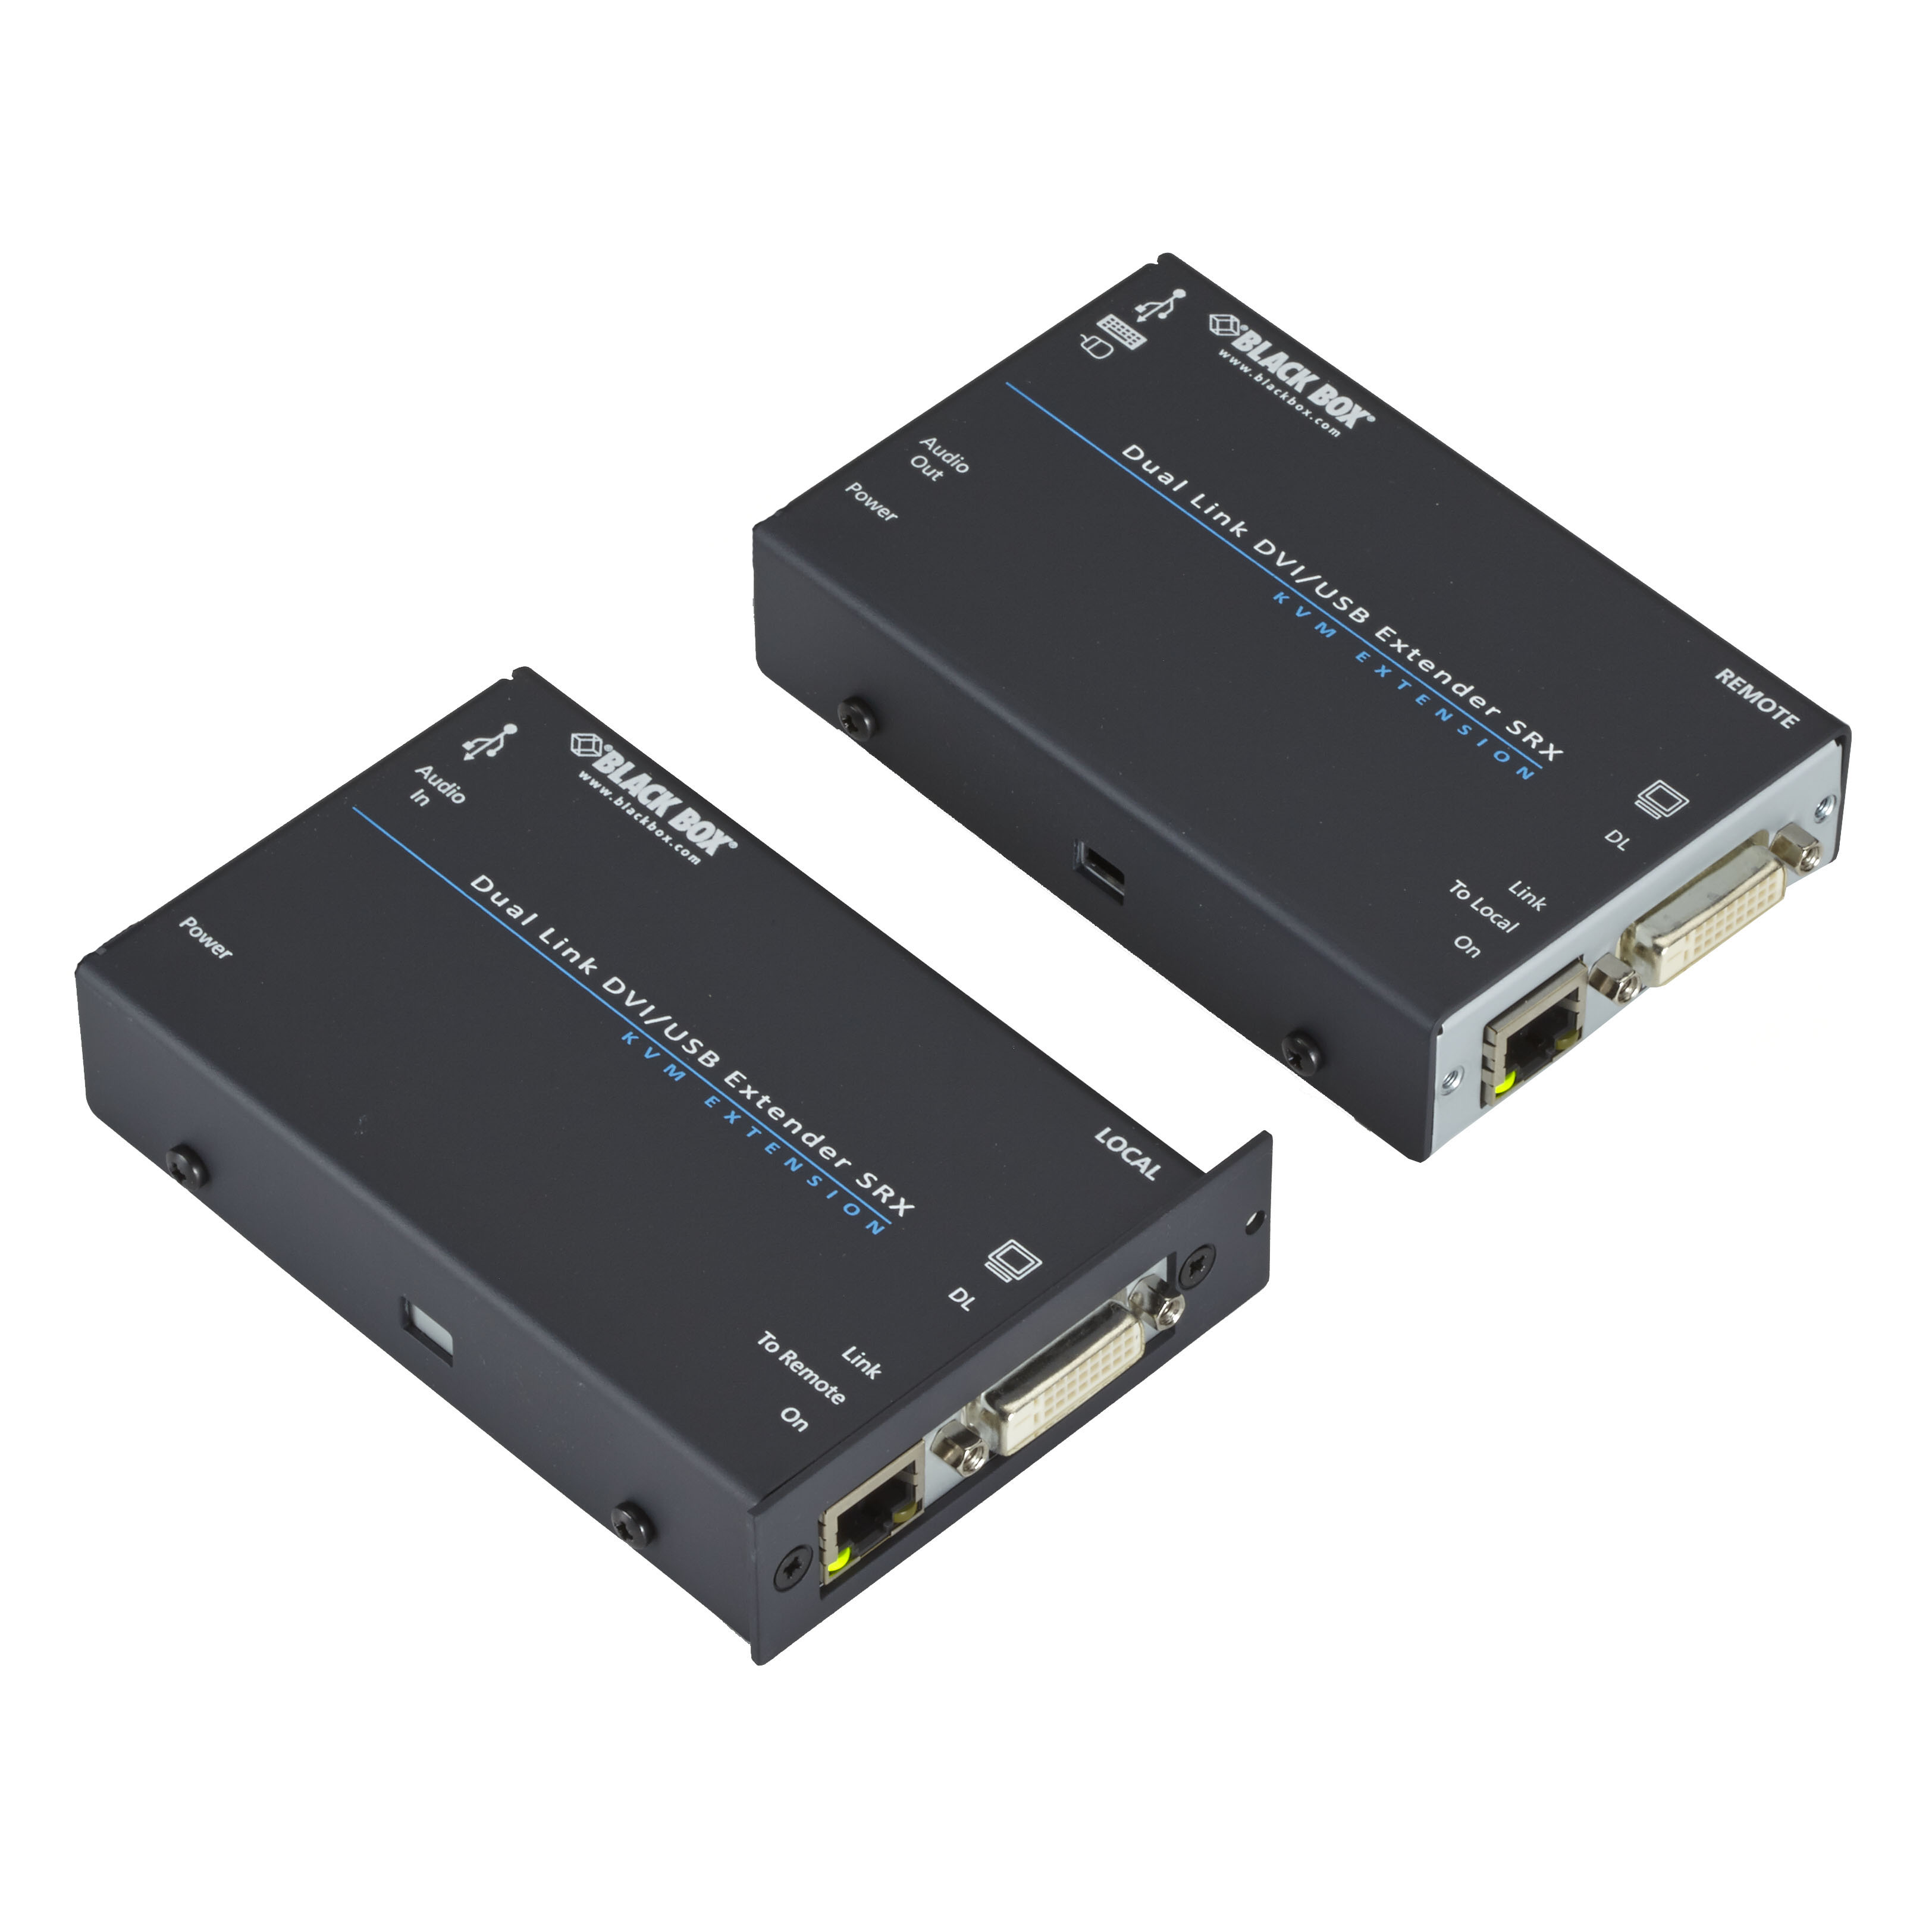 Kvm Extender Dual Link Dvi D Usb Hid Catx Single Access Black Box Barel Rj45 Double Female To Acu5520a